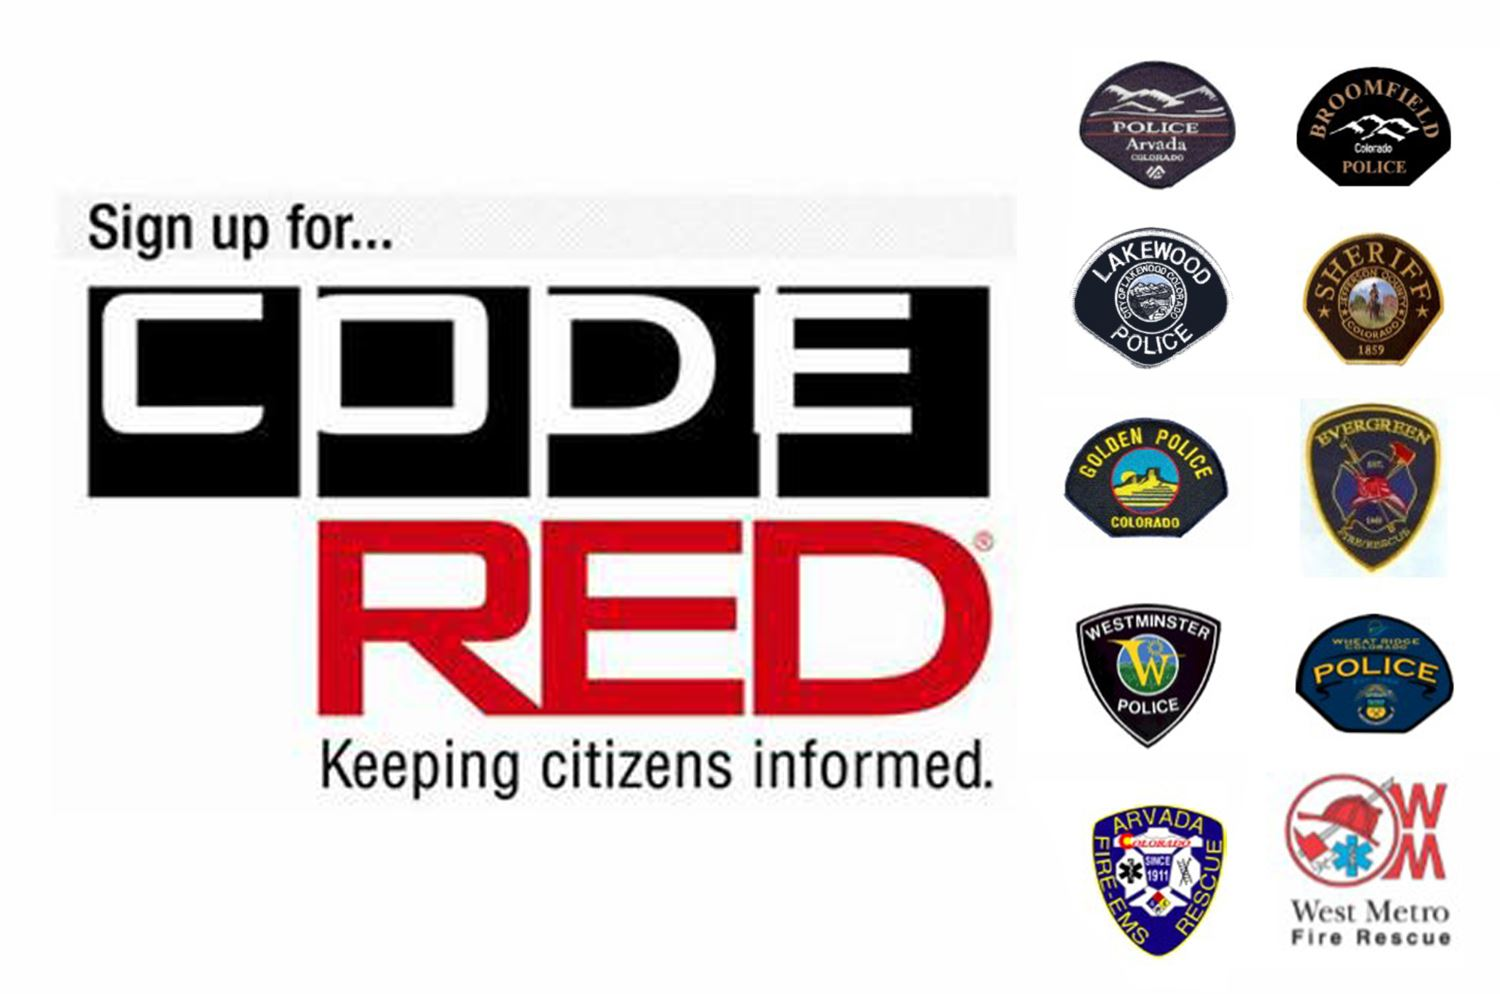 Code Red logo with various police badges